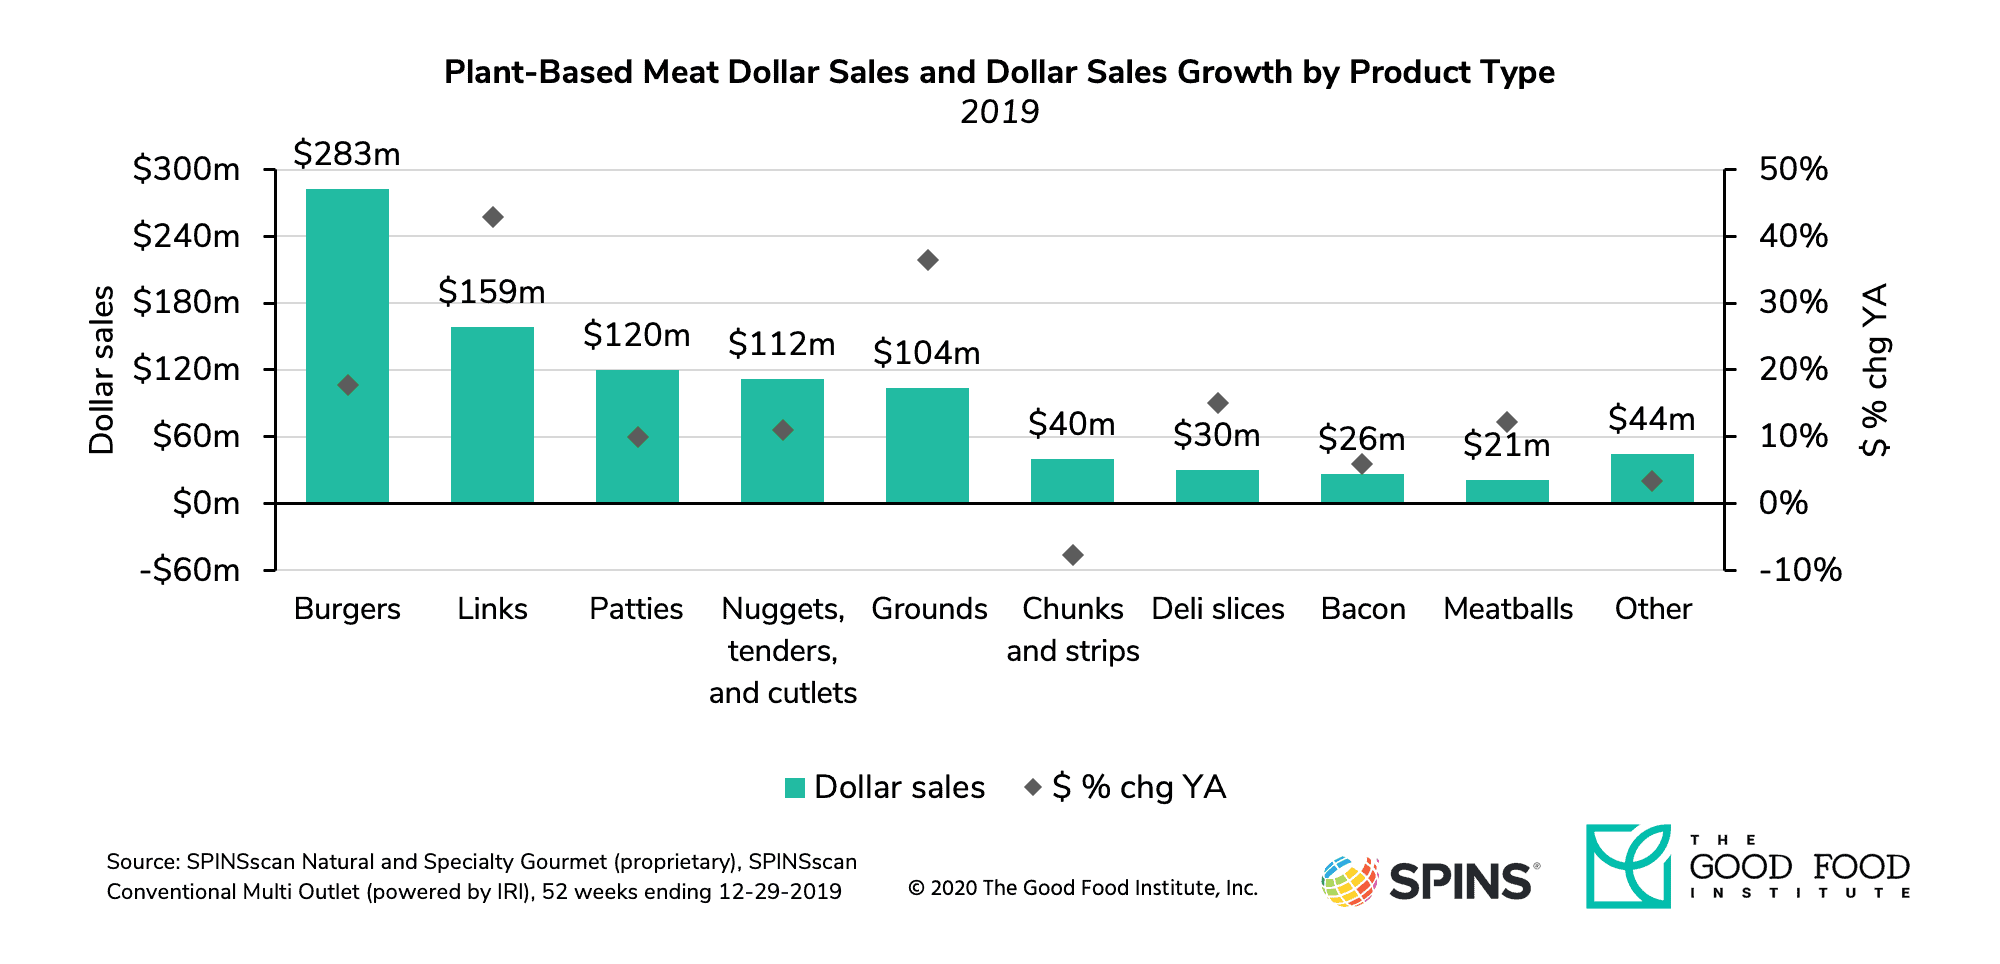 Plant-Based Meat Market Growth by Product Type GFI